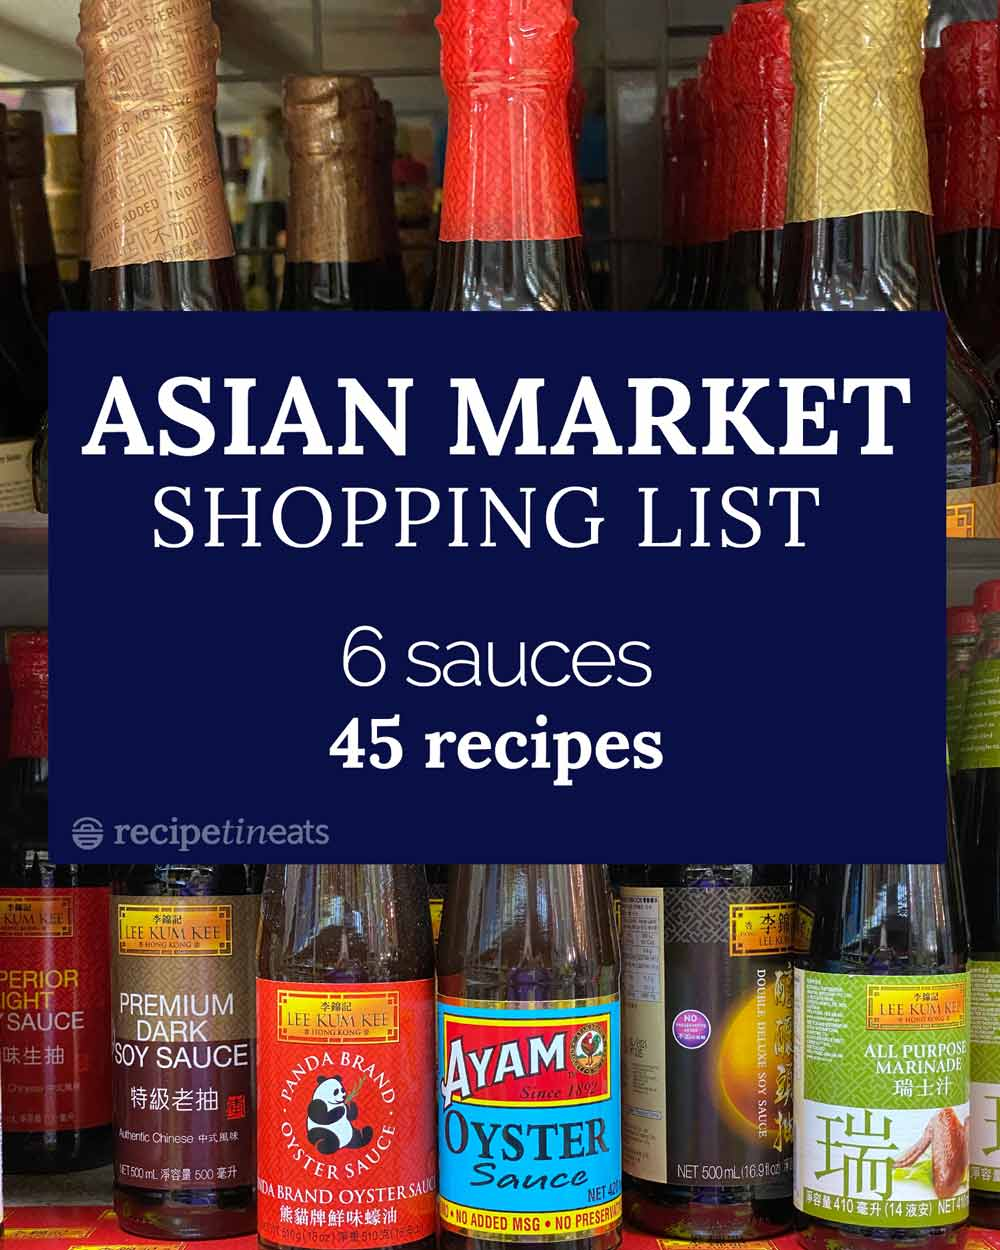 My Asian market shopping list (6 sauces, 45+ recipes!) 19